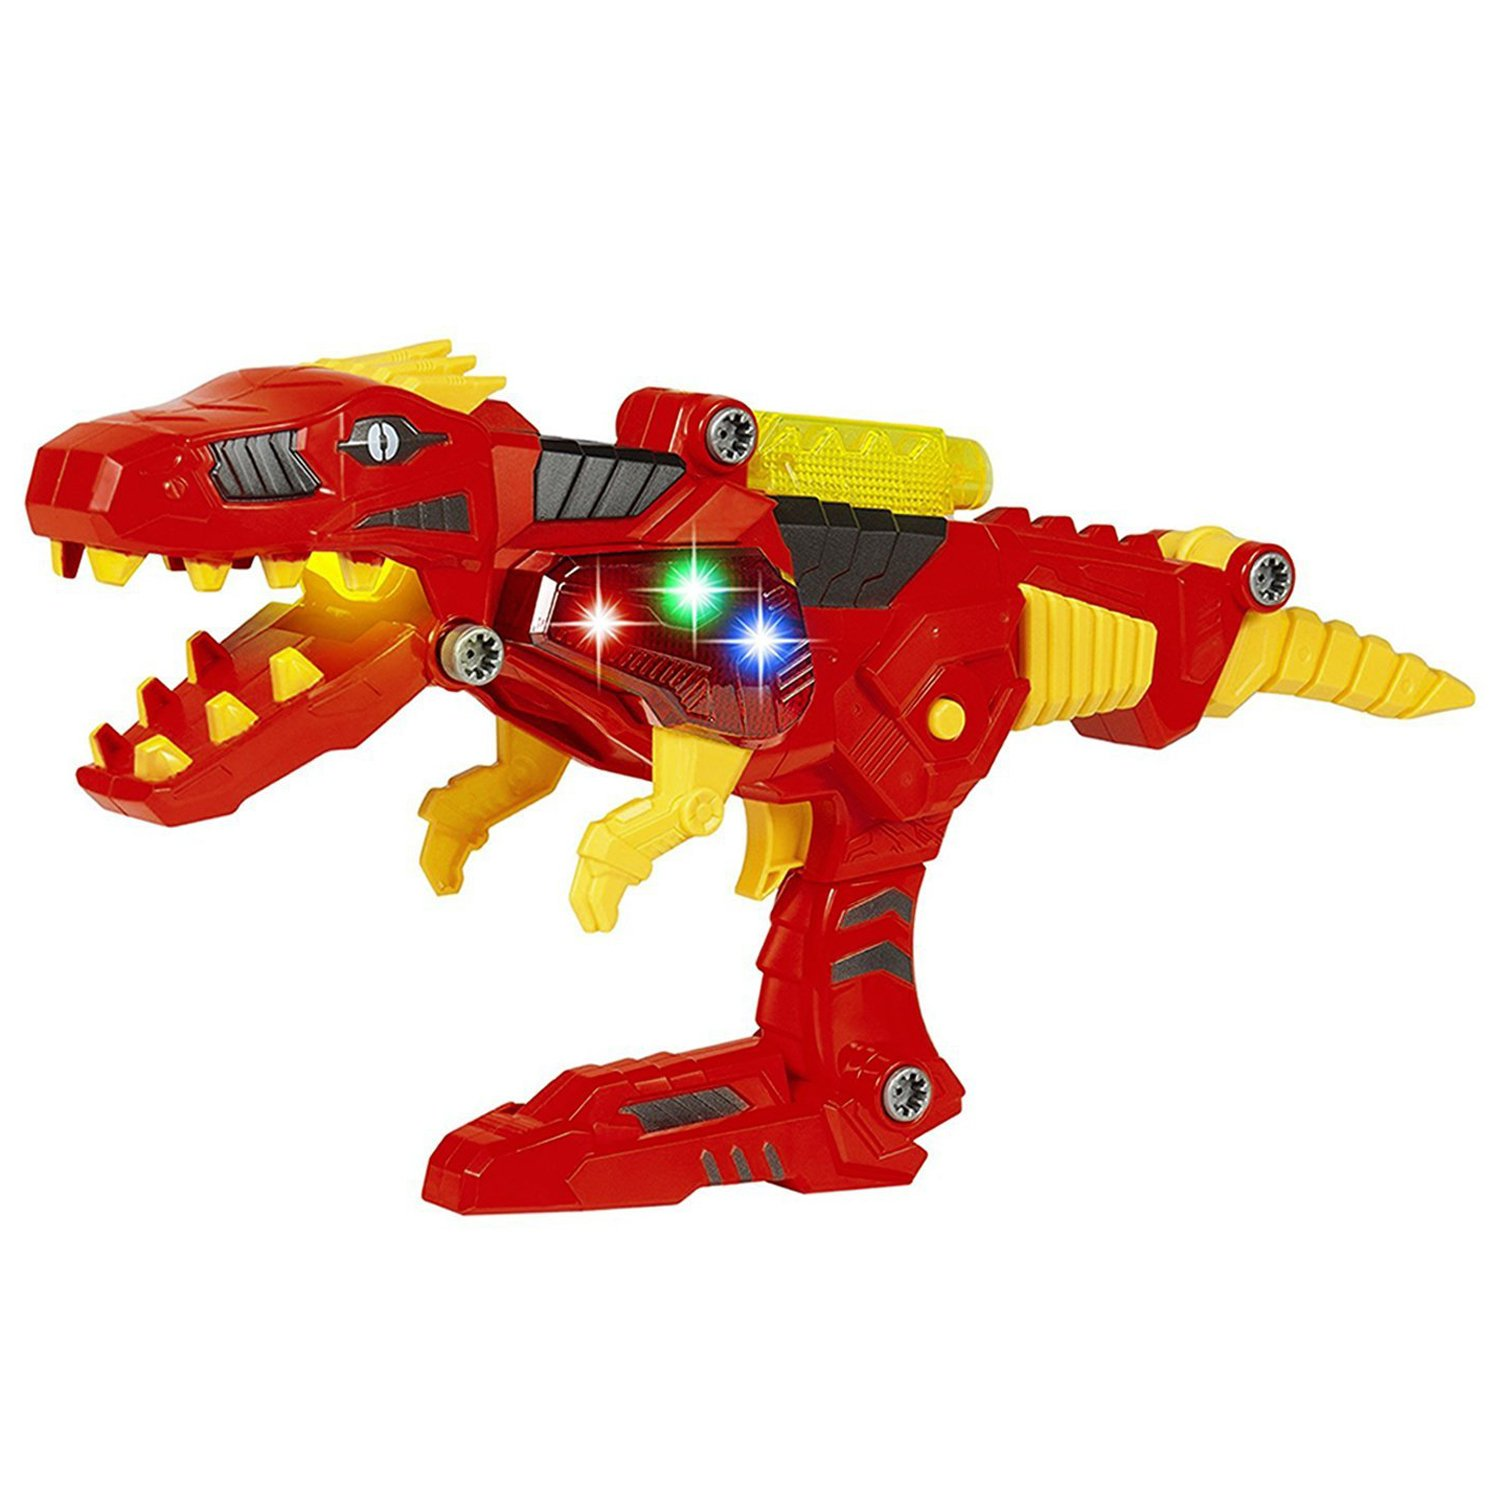 KidPlay Dino Gun Dinosaur Space Battle Robot Interchangeable Transforming Toy